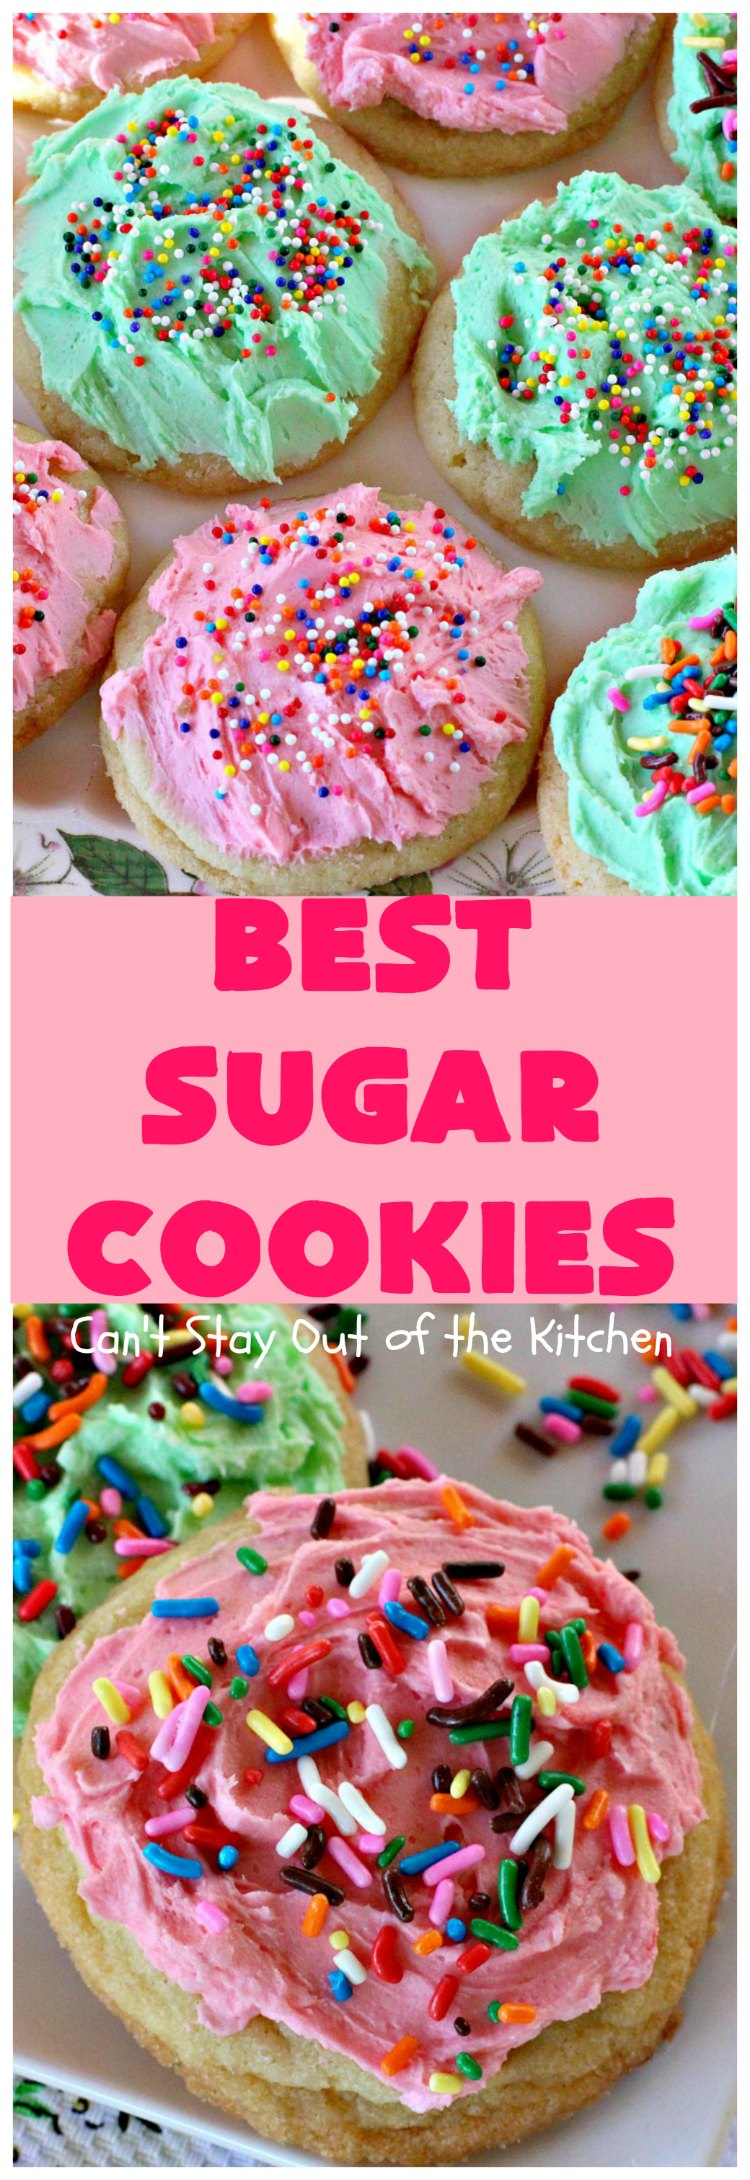 best sugar cookies cant stay out of the kitchen these